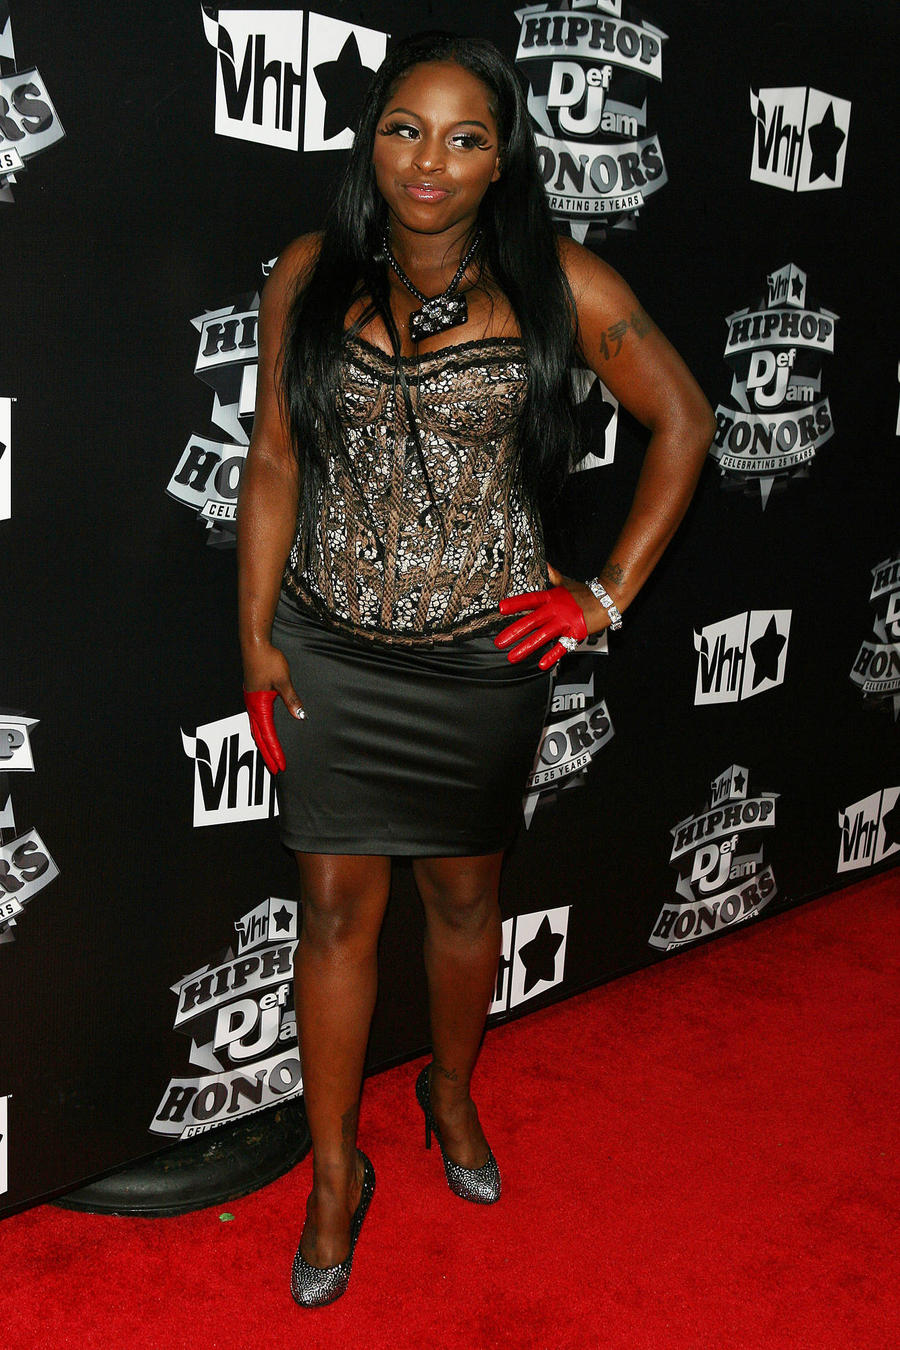 Rapper Foxy Brown Gives Birth - Report